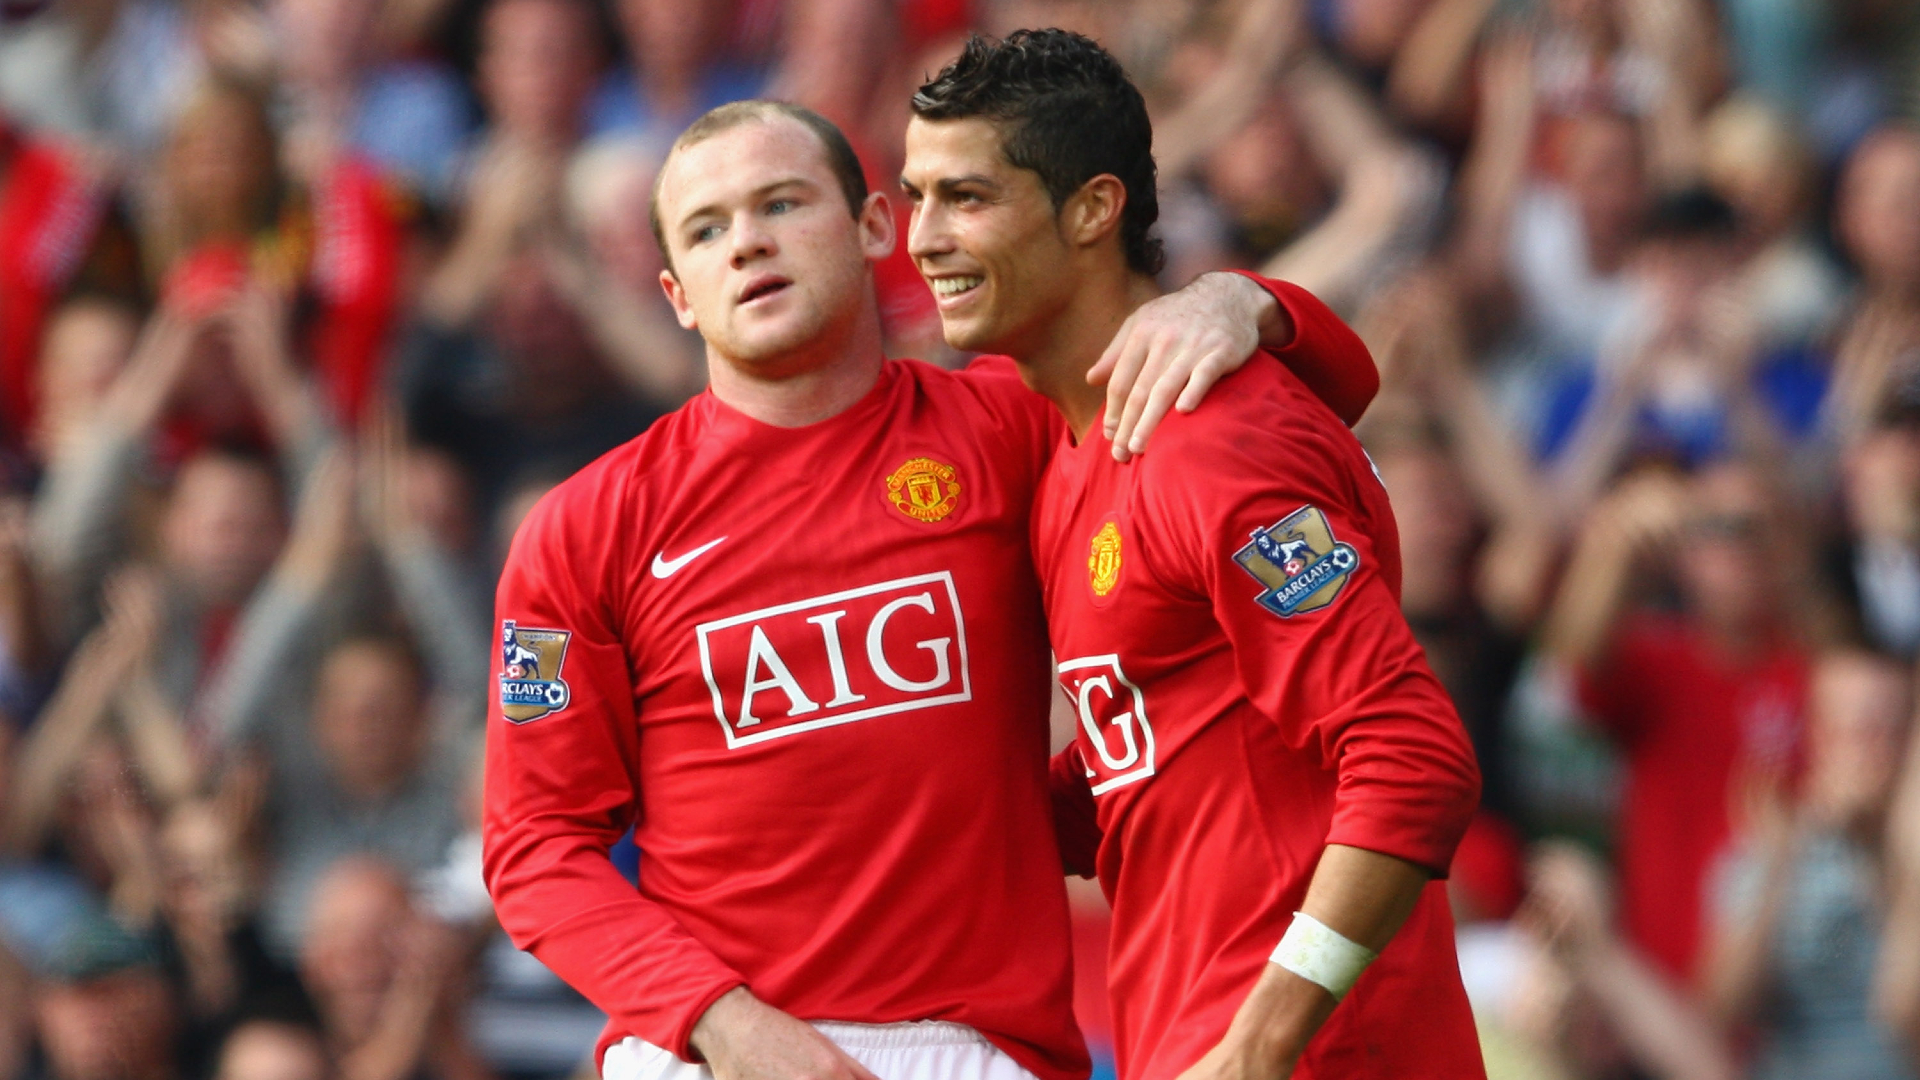 Rooney or Ronaldo? Silvestre on Ballon d'Or predictions when Man Utd greats joined forces